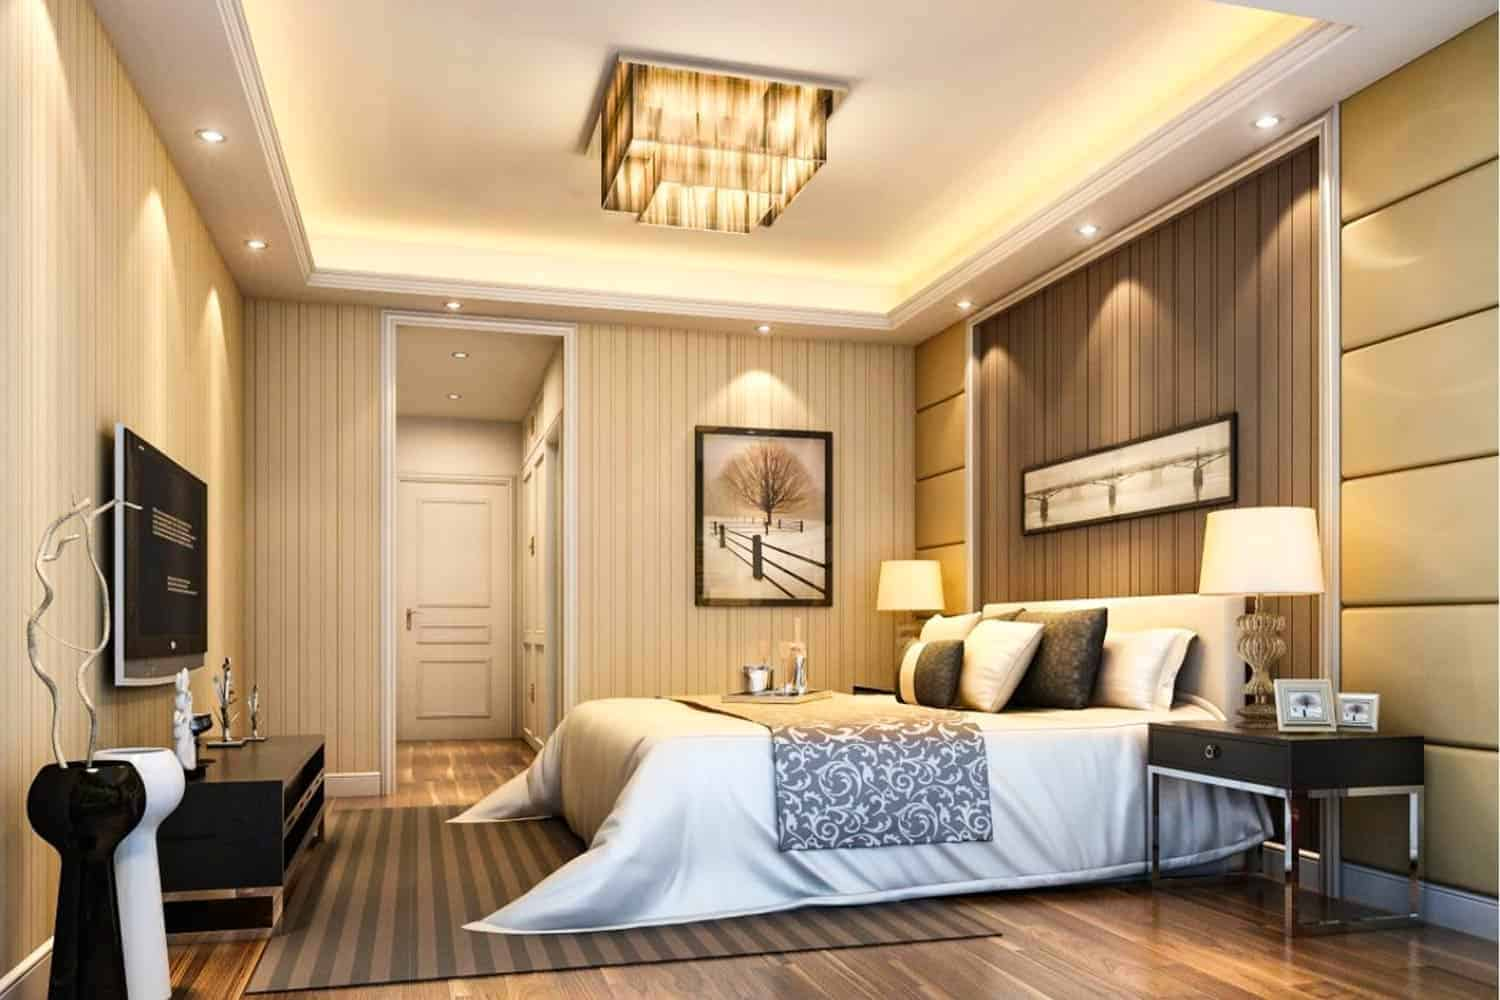 False ceiling designs for bedroom that will win your heart (50+ designs)